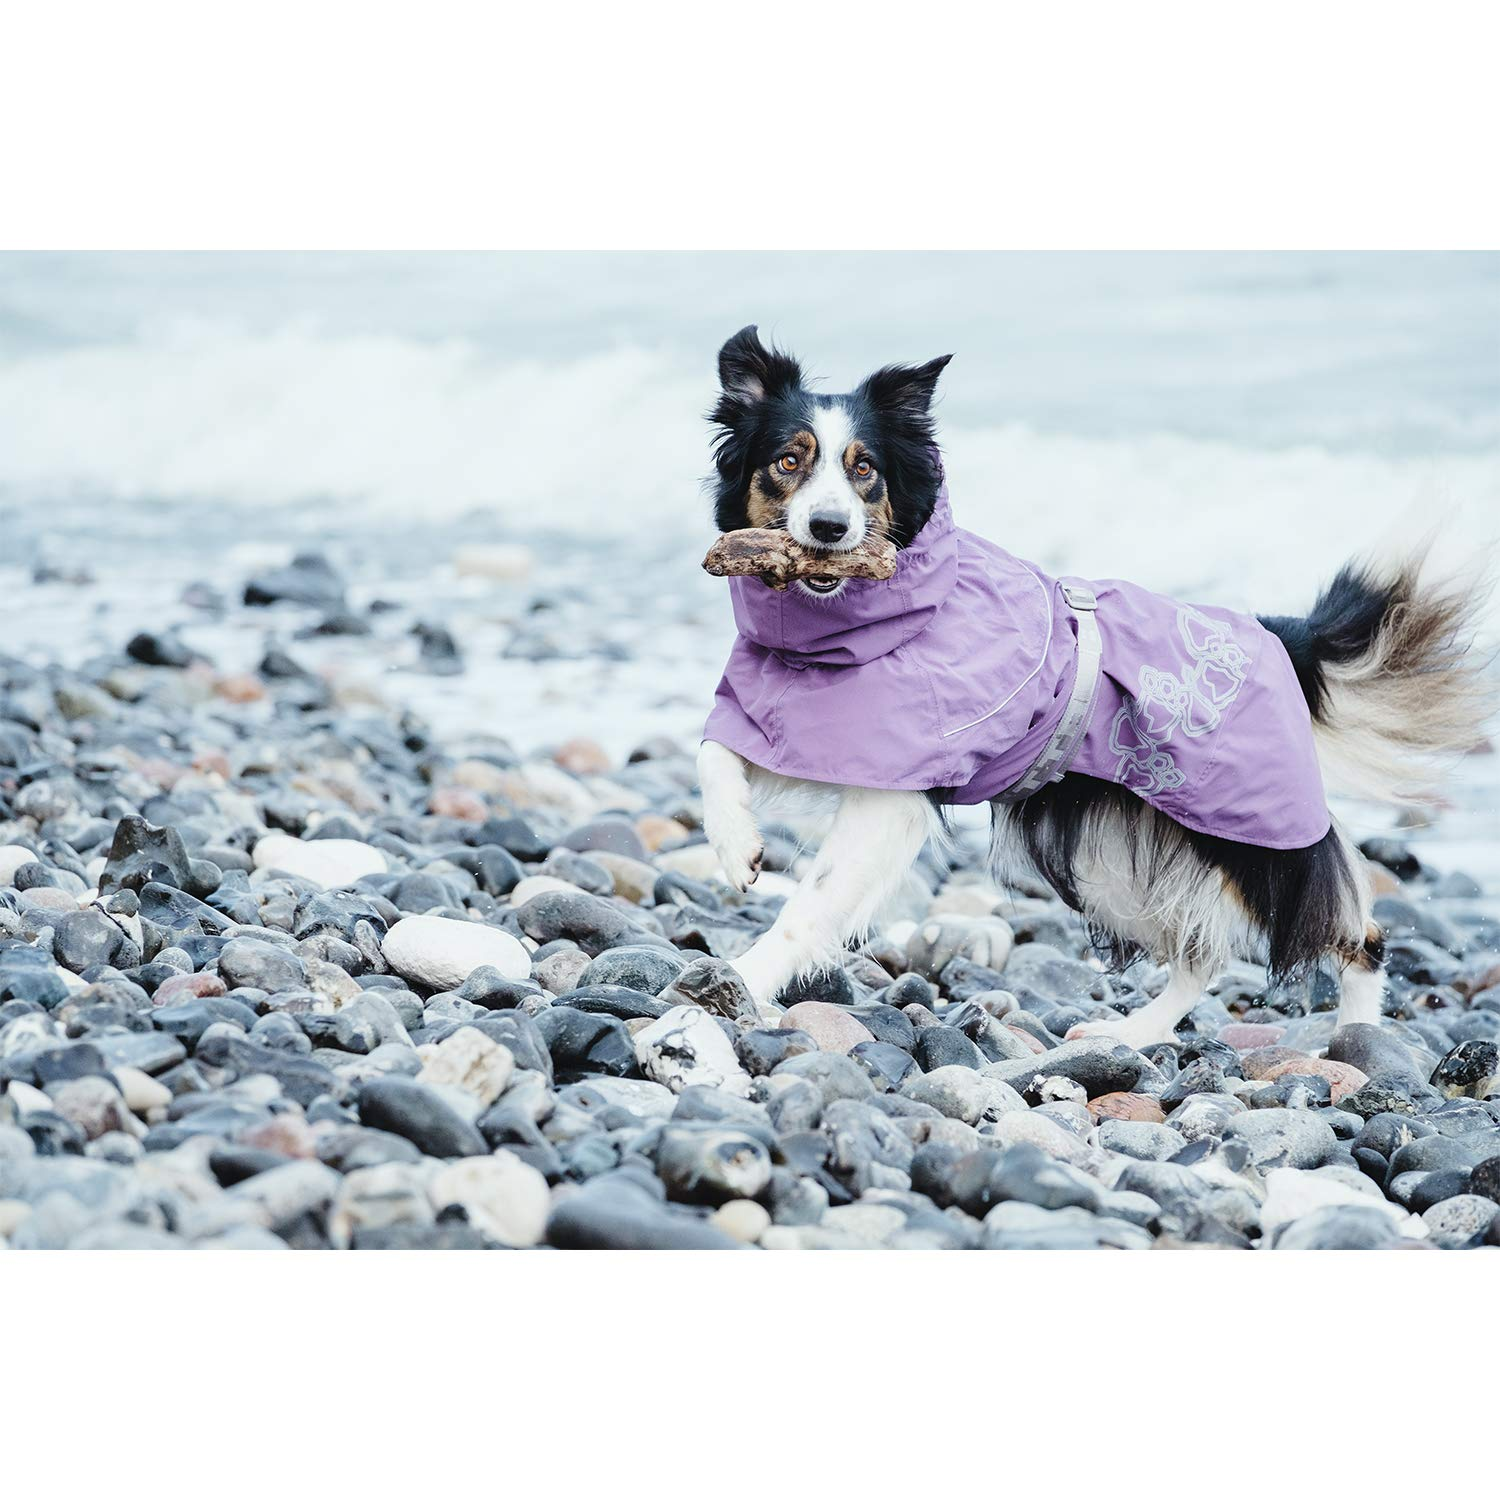 Hurtta Drizzle Coat, Dog Raincoat, Currant, 18 in by Hurtta (Image #2)